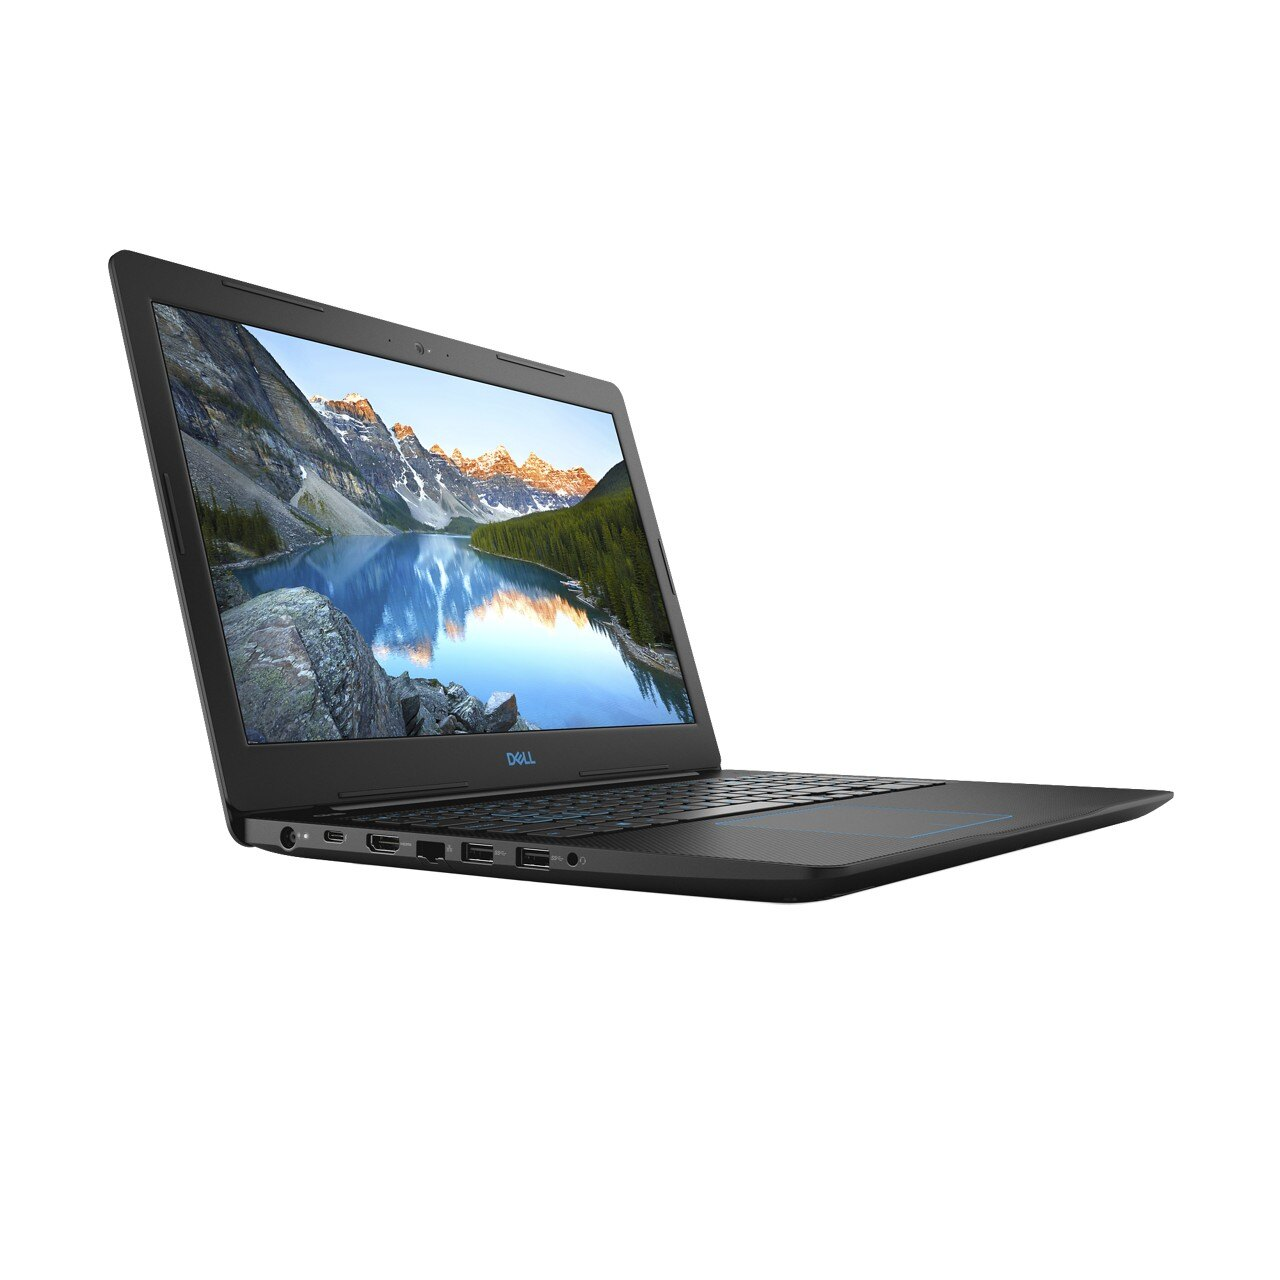 "Dell G3 15 Gaming 15.6"" FHD Quad Core i5 Laptop + $7.49 Credit"